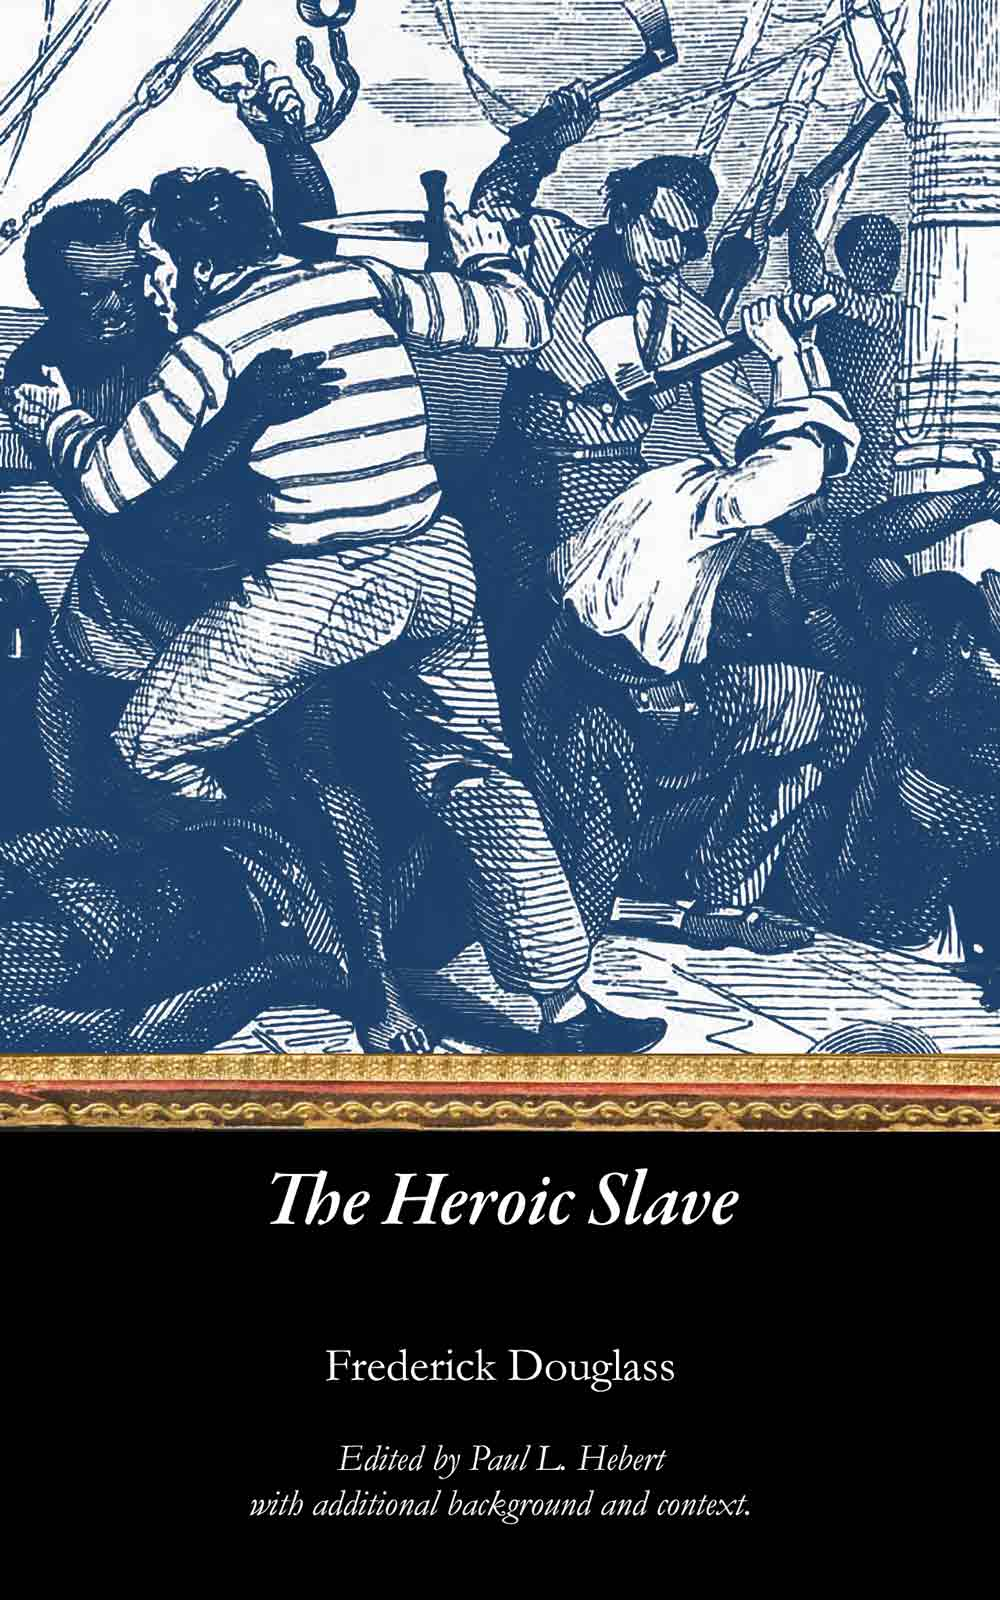 The Heroic Slave, by Frederick Douglass, Edited by Paul L. Hebert, with additional background and context.